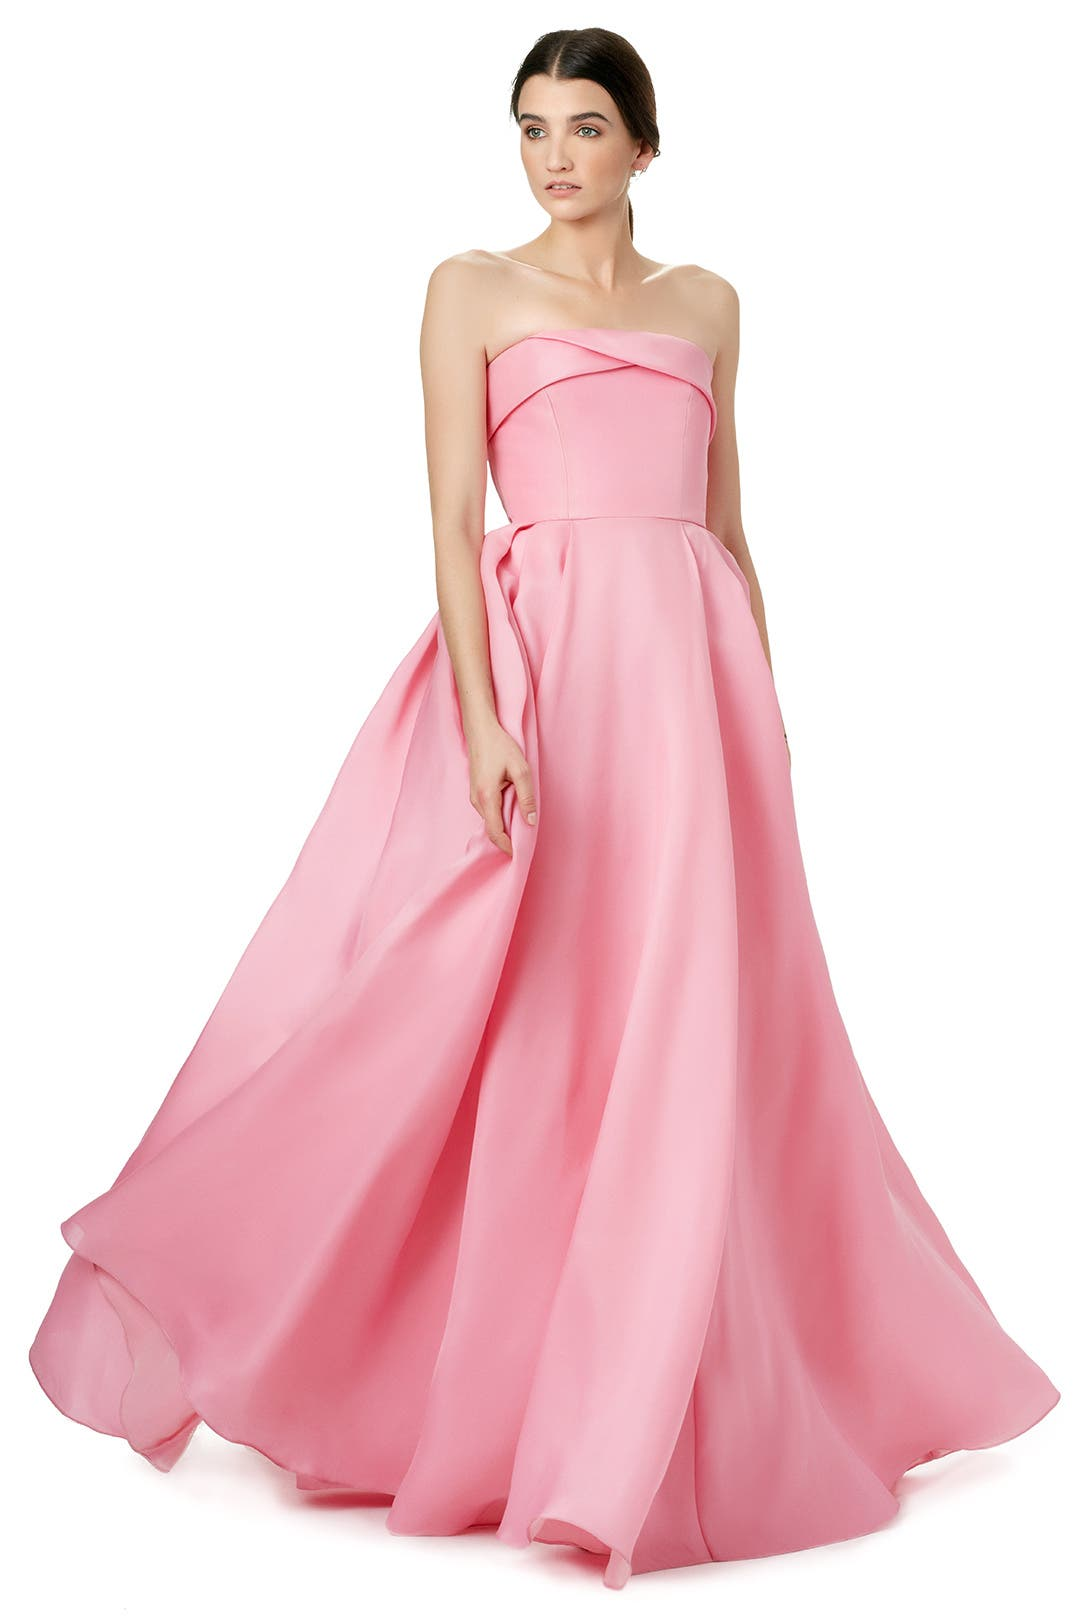 Cherry Blossom Gown by Reem Acra for $700 | Rent the Runway